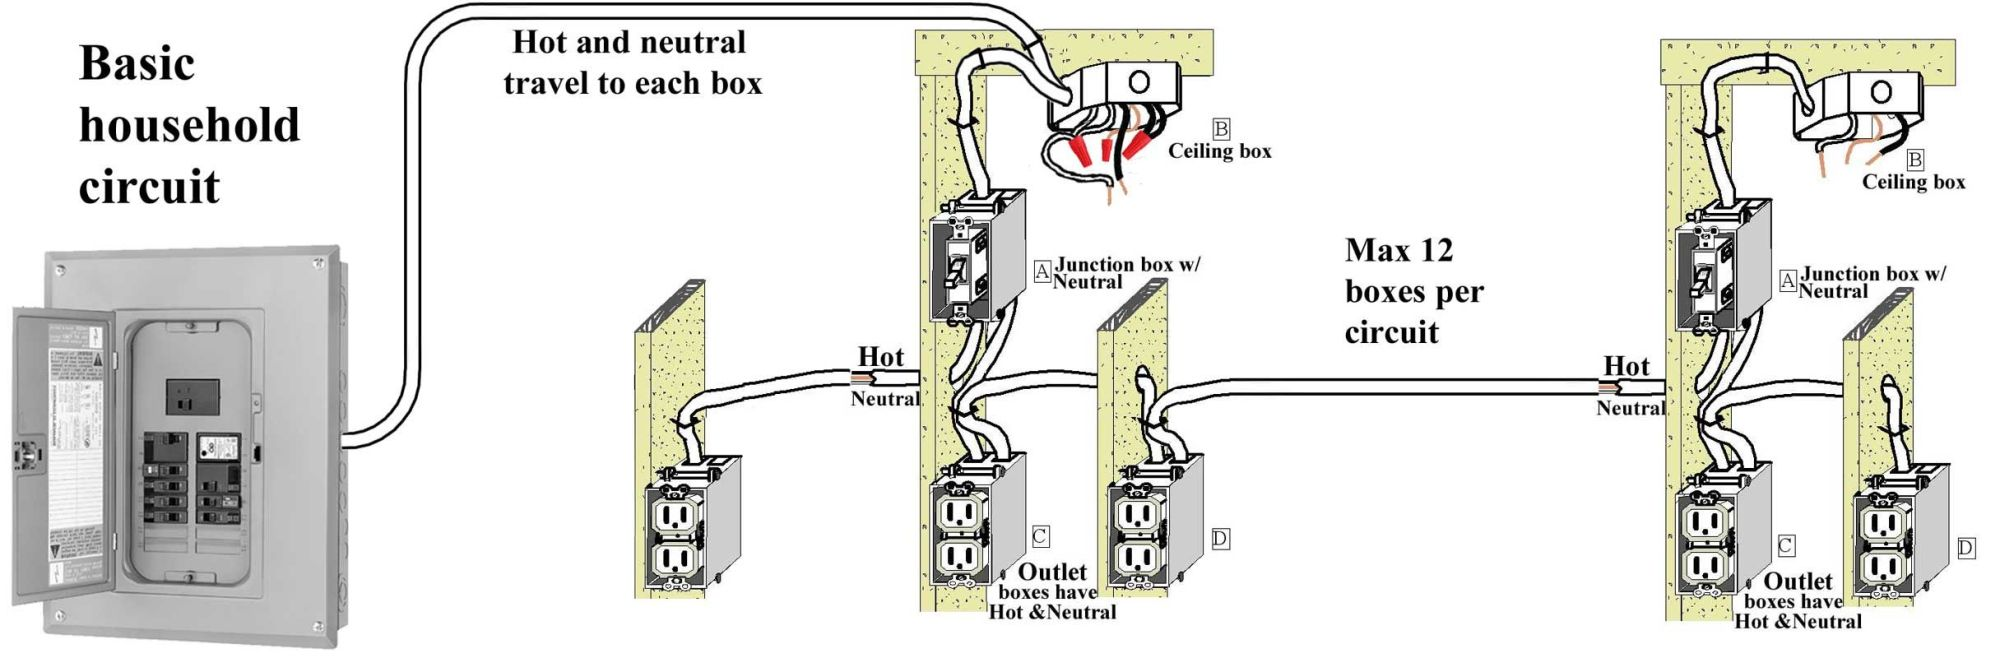 hight resolution of basic home electrical wiring diagrams file name basic house wiring installation diagram house wiring installation pdf